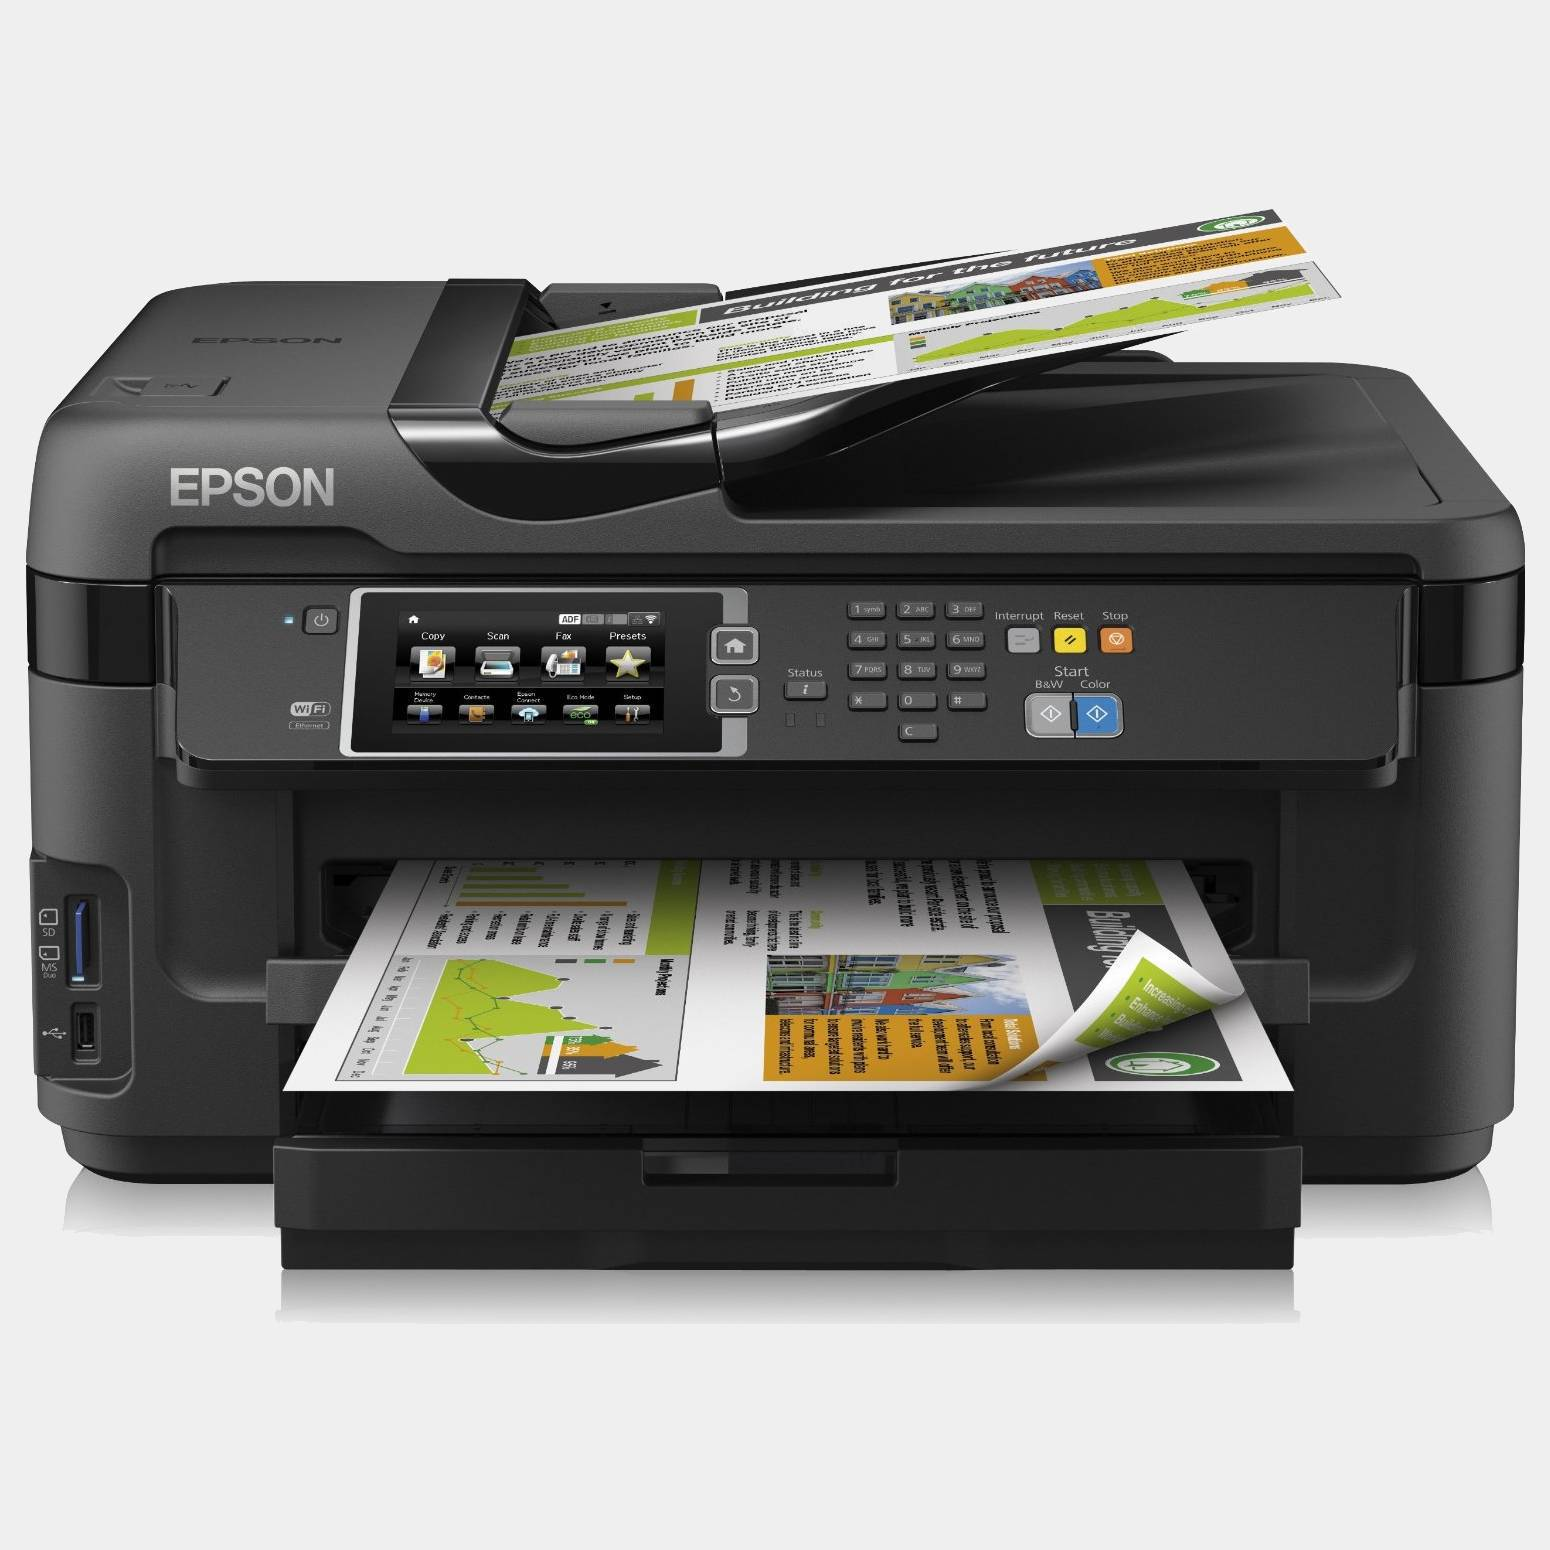 Epson Workforce Wf7610dwf Fax multifuncion de inyeccion color